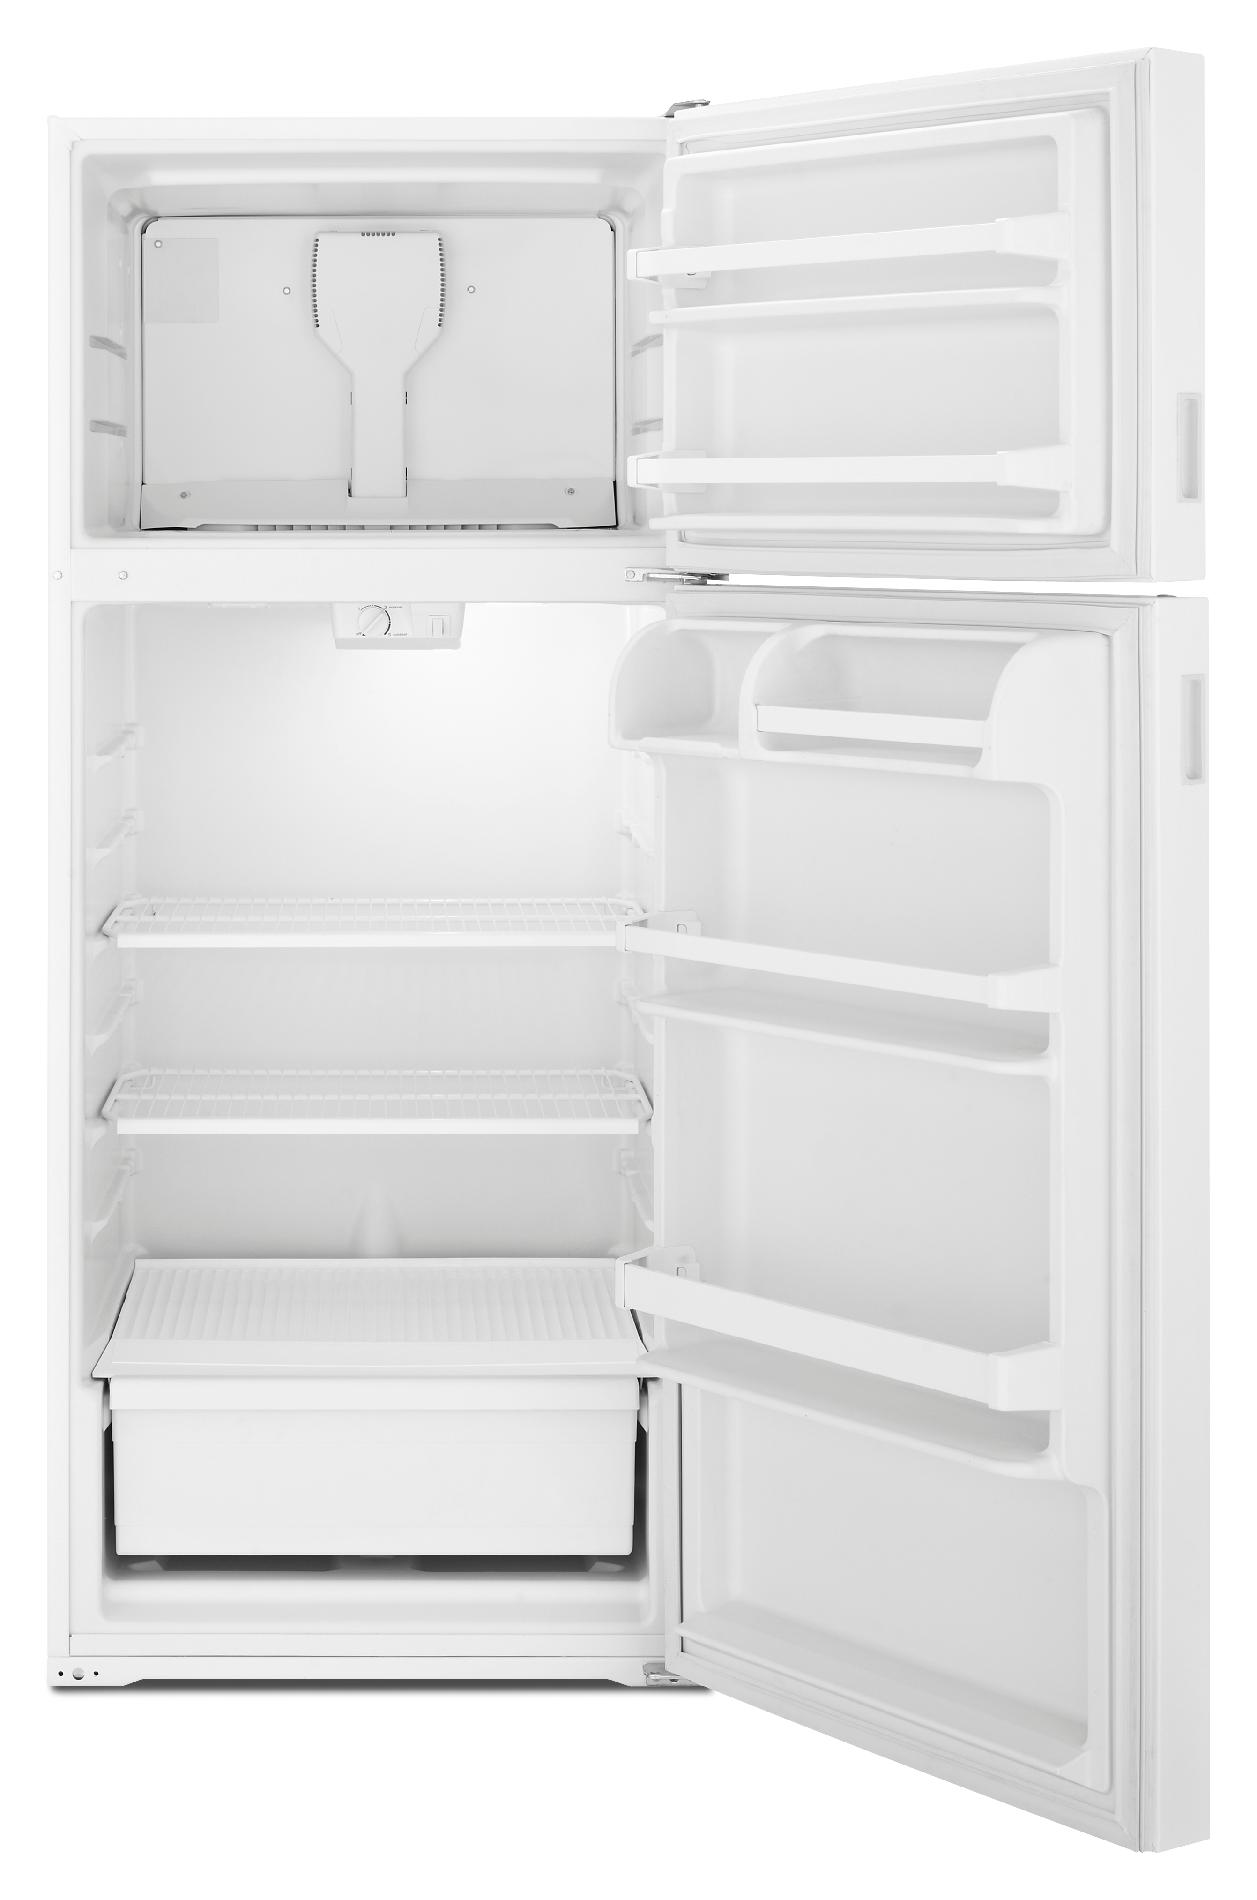 A well-known brand 18 cu ft top freezer refrigerator